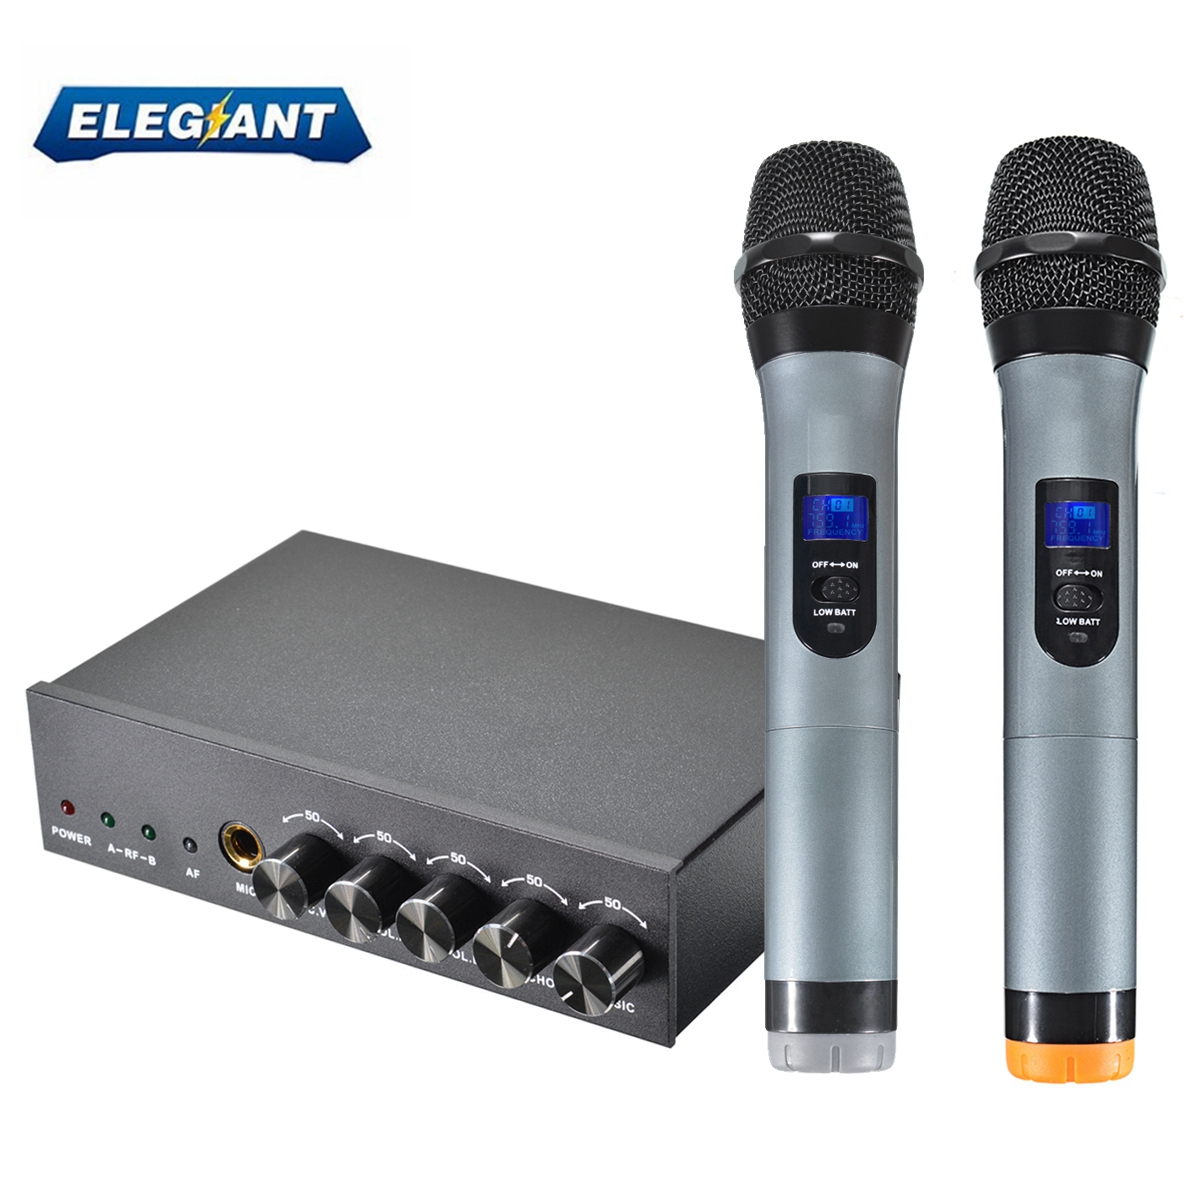 ELEGIANT Professional Dual UHF Bluetooth Handheld Wireless Karaoke Microphone Receiver System Independent Adjustable Volume Control With 2 Cordless Mics For Home KTV Conference